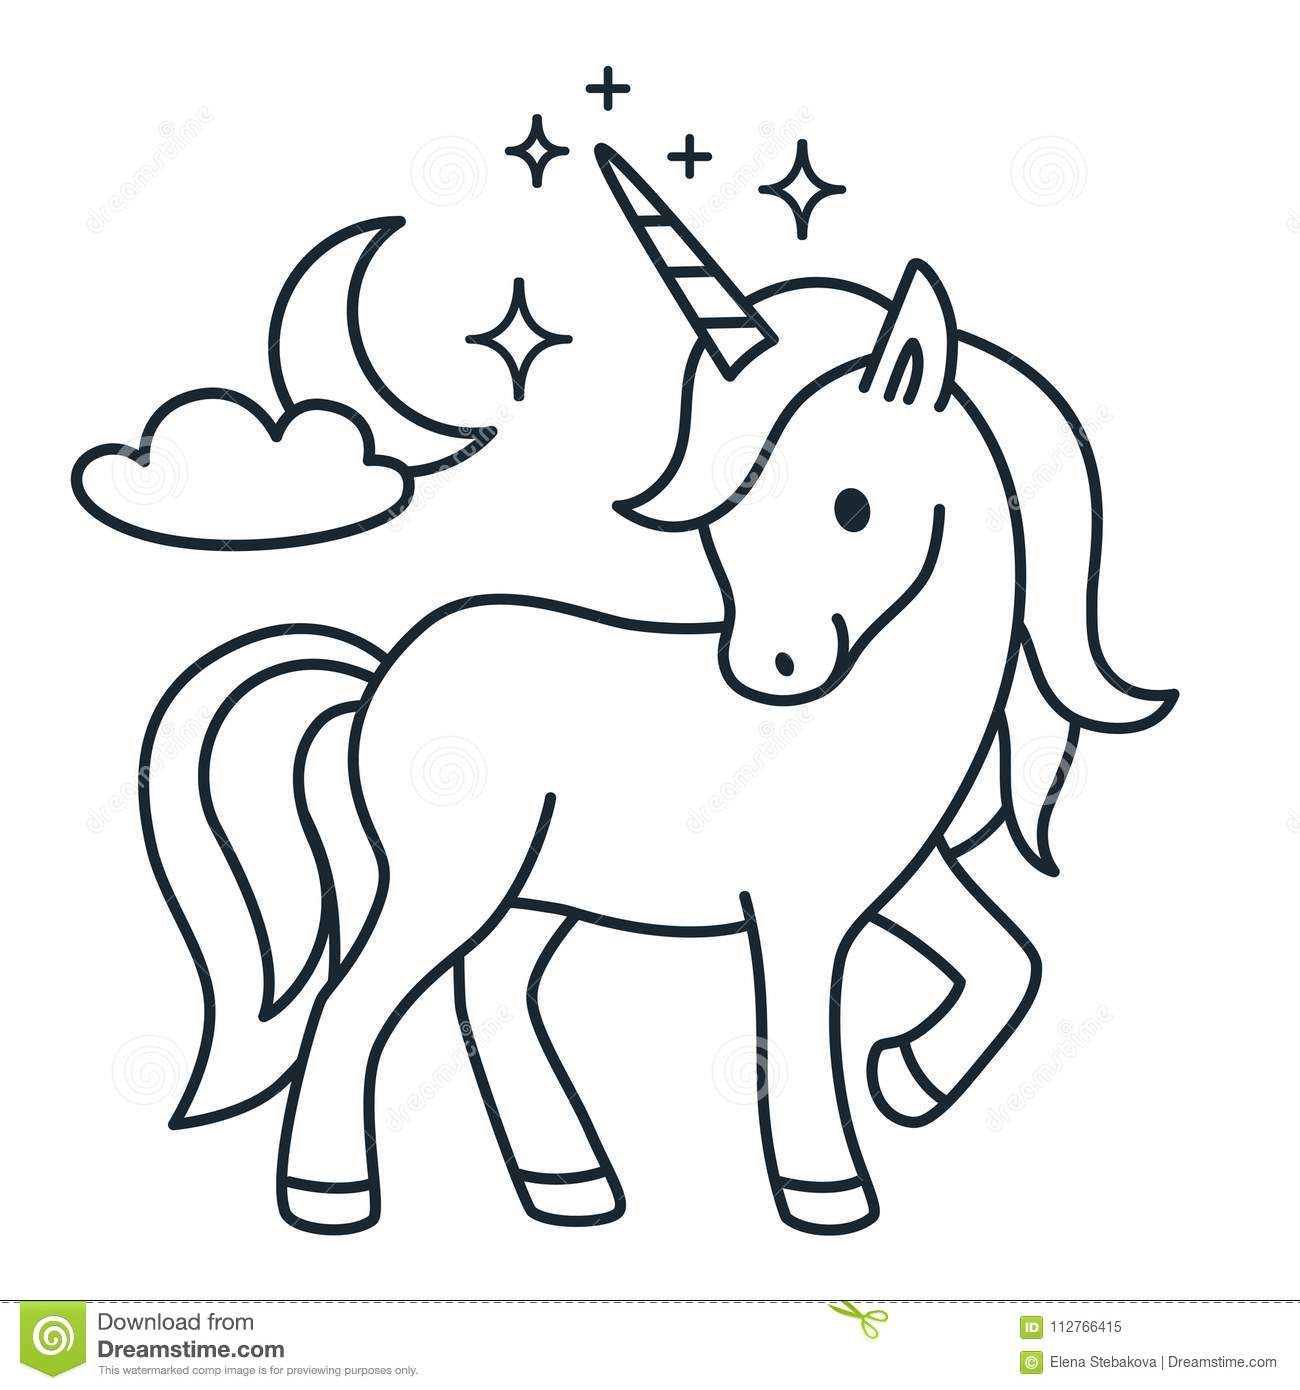 Royalty Free Vector Download Cute Unicorn Simple Cartoon Coloring Book Illustration